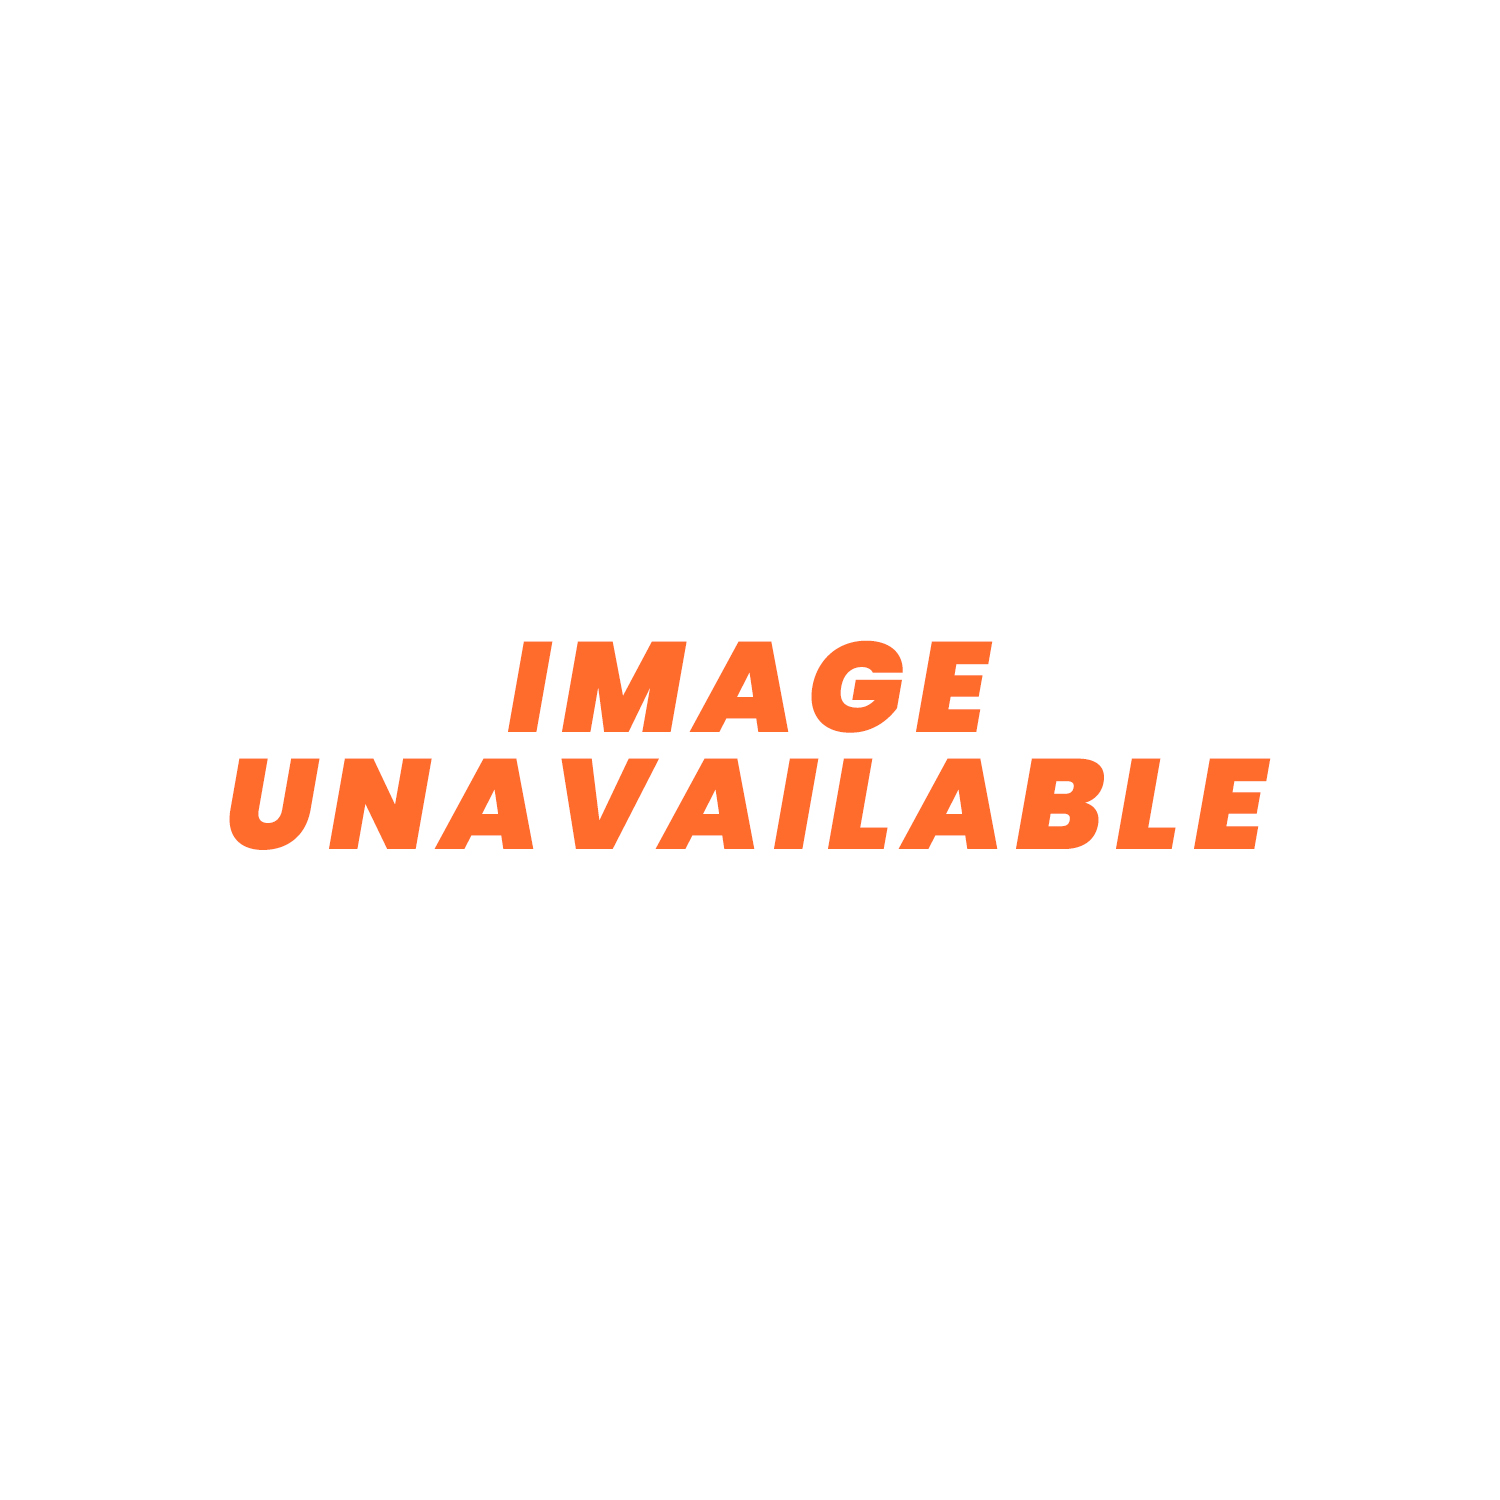 008-A45-02 SPAL Centrifugal Blower 407cfm Front